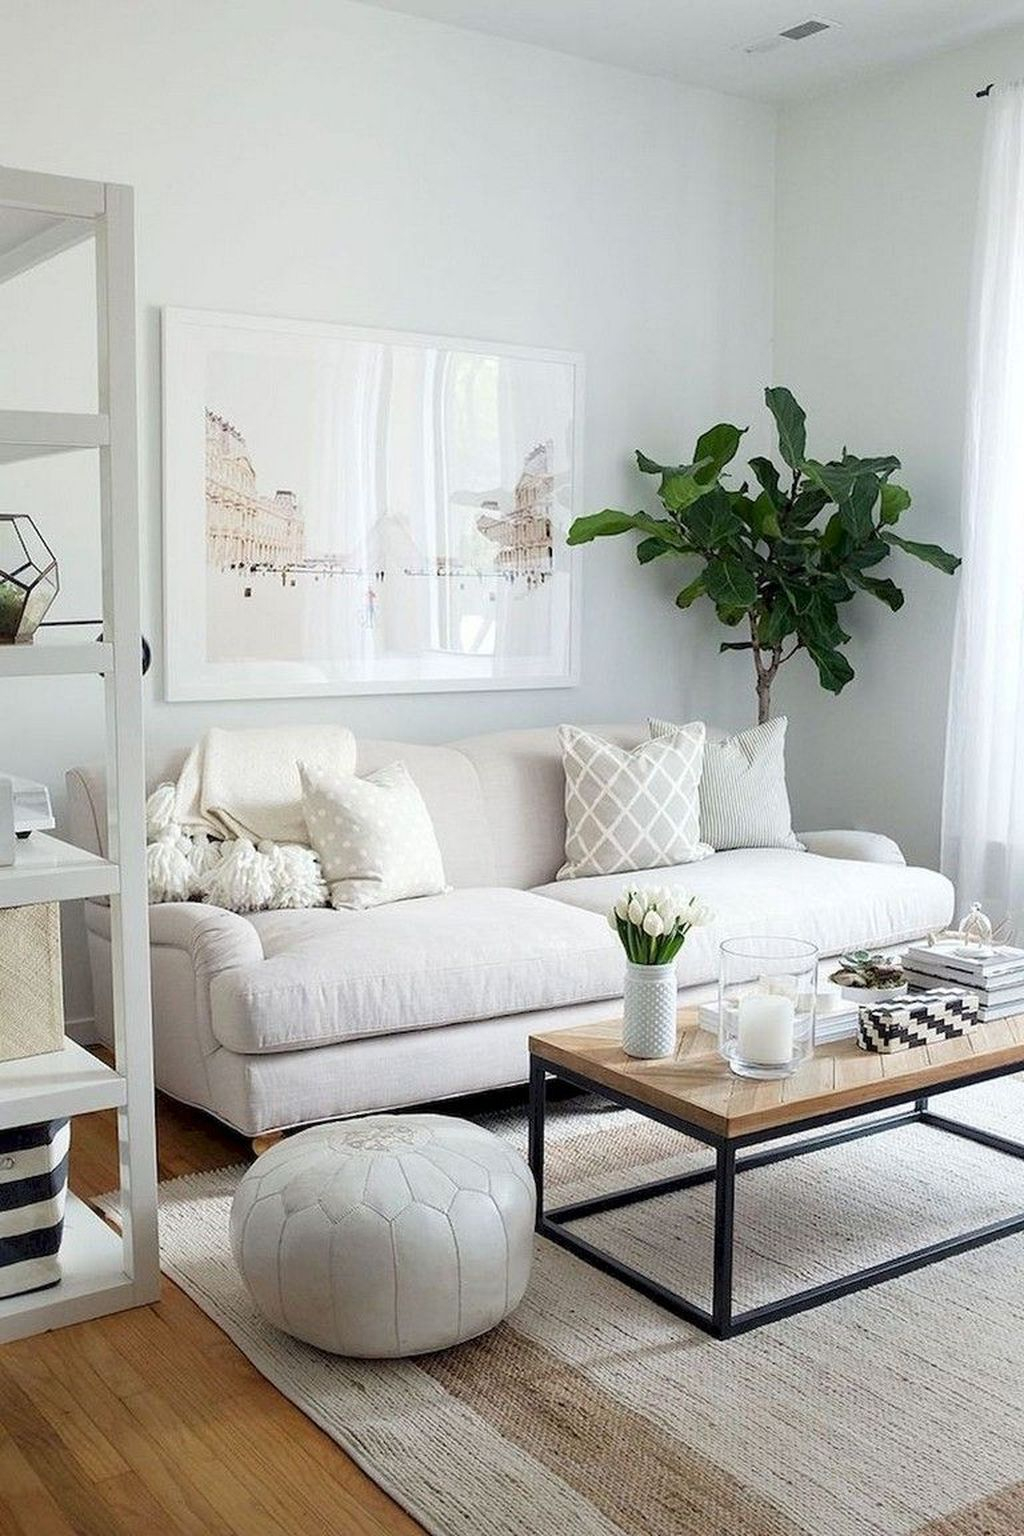 Magnificient Diy Apartment Decorating Ideas To Try Simply 24